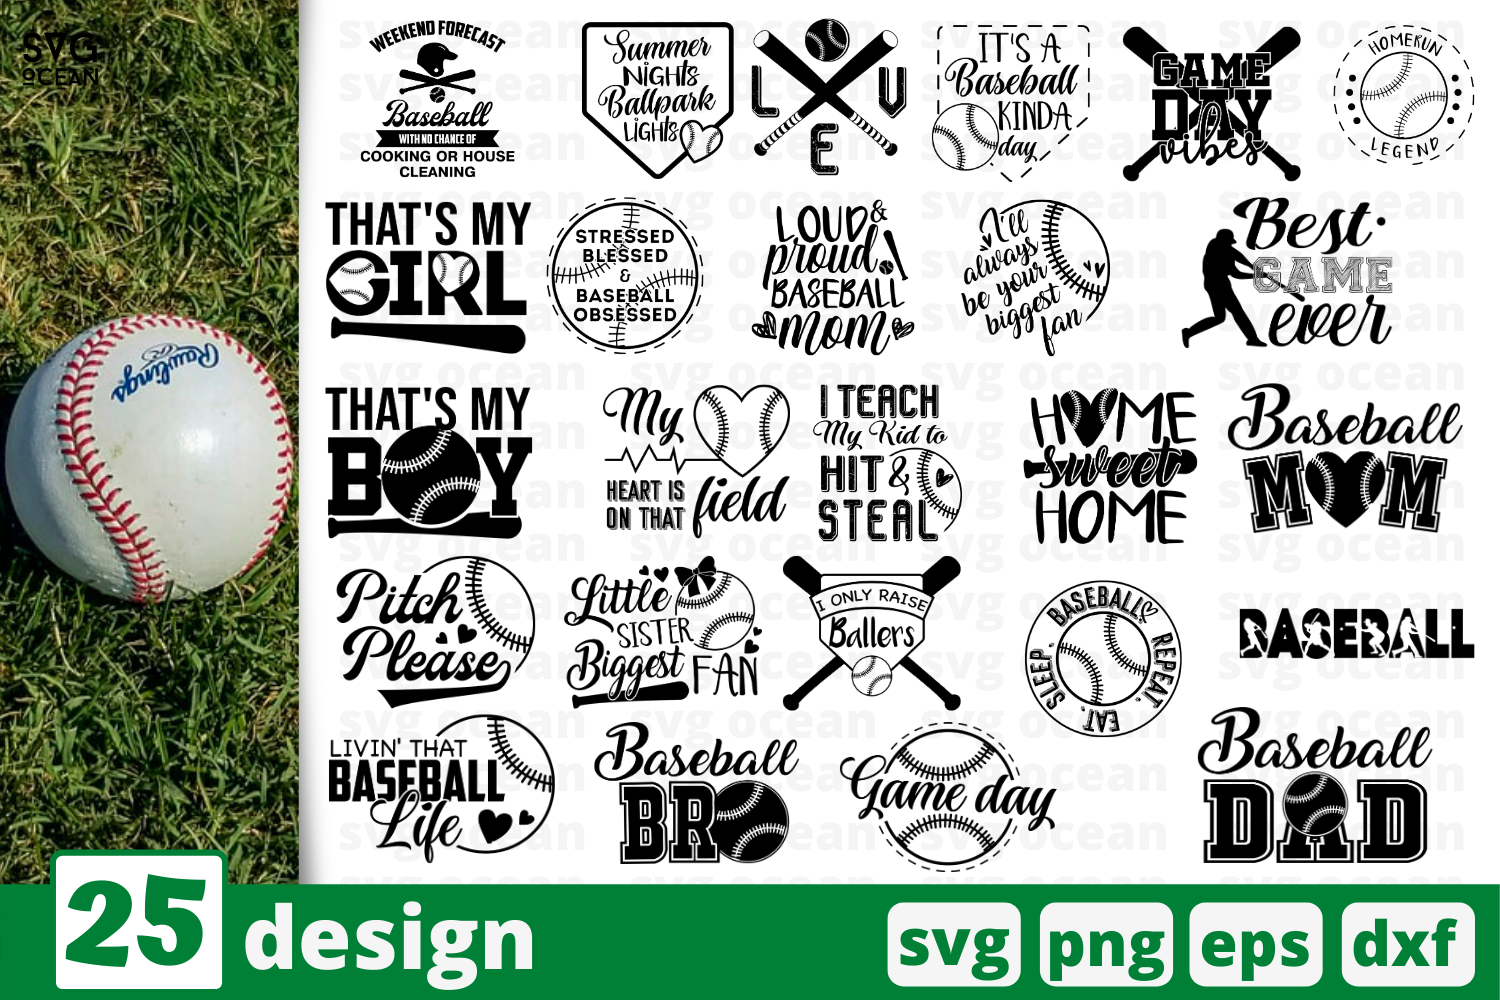 Download Free Baseball Quote Bundle Graphic By Svgocean Creative Fabrica for Cricut Explore, Silhouette and other cutting machines.